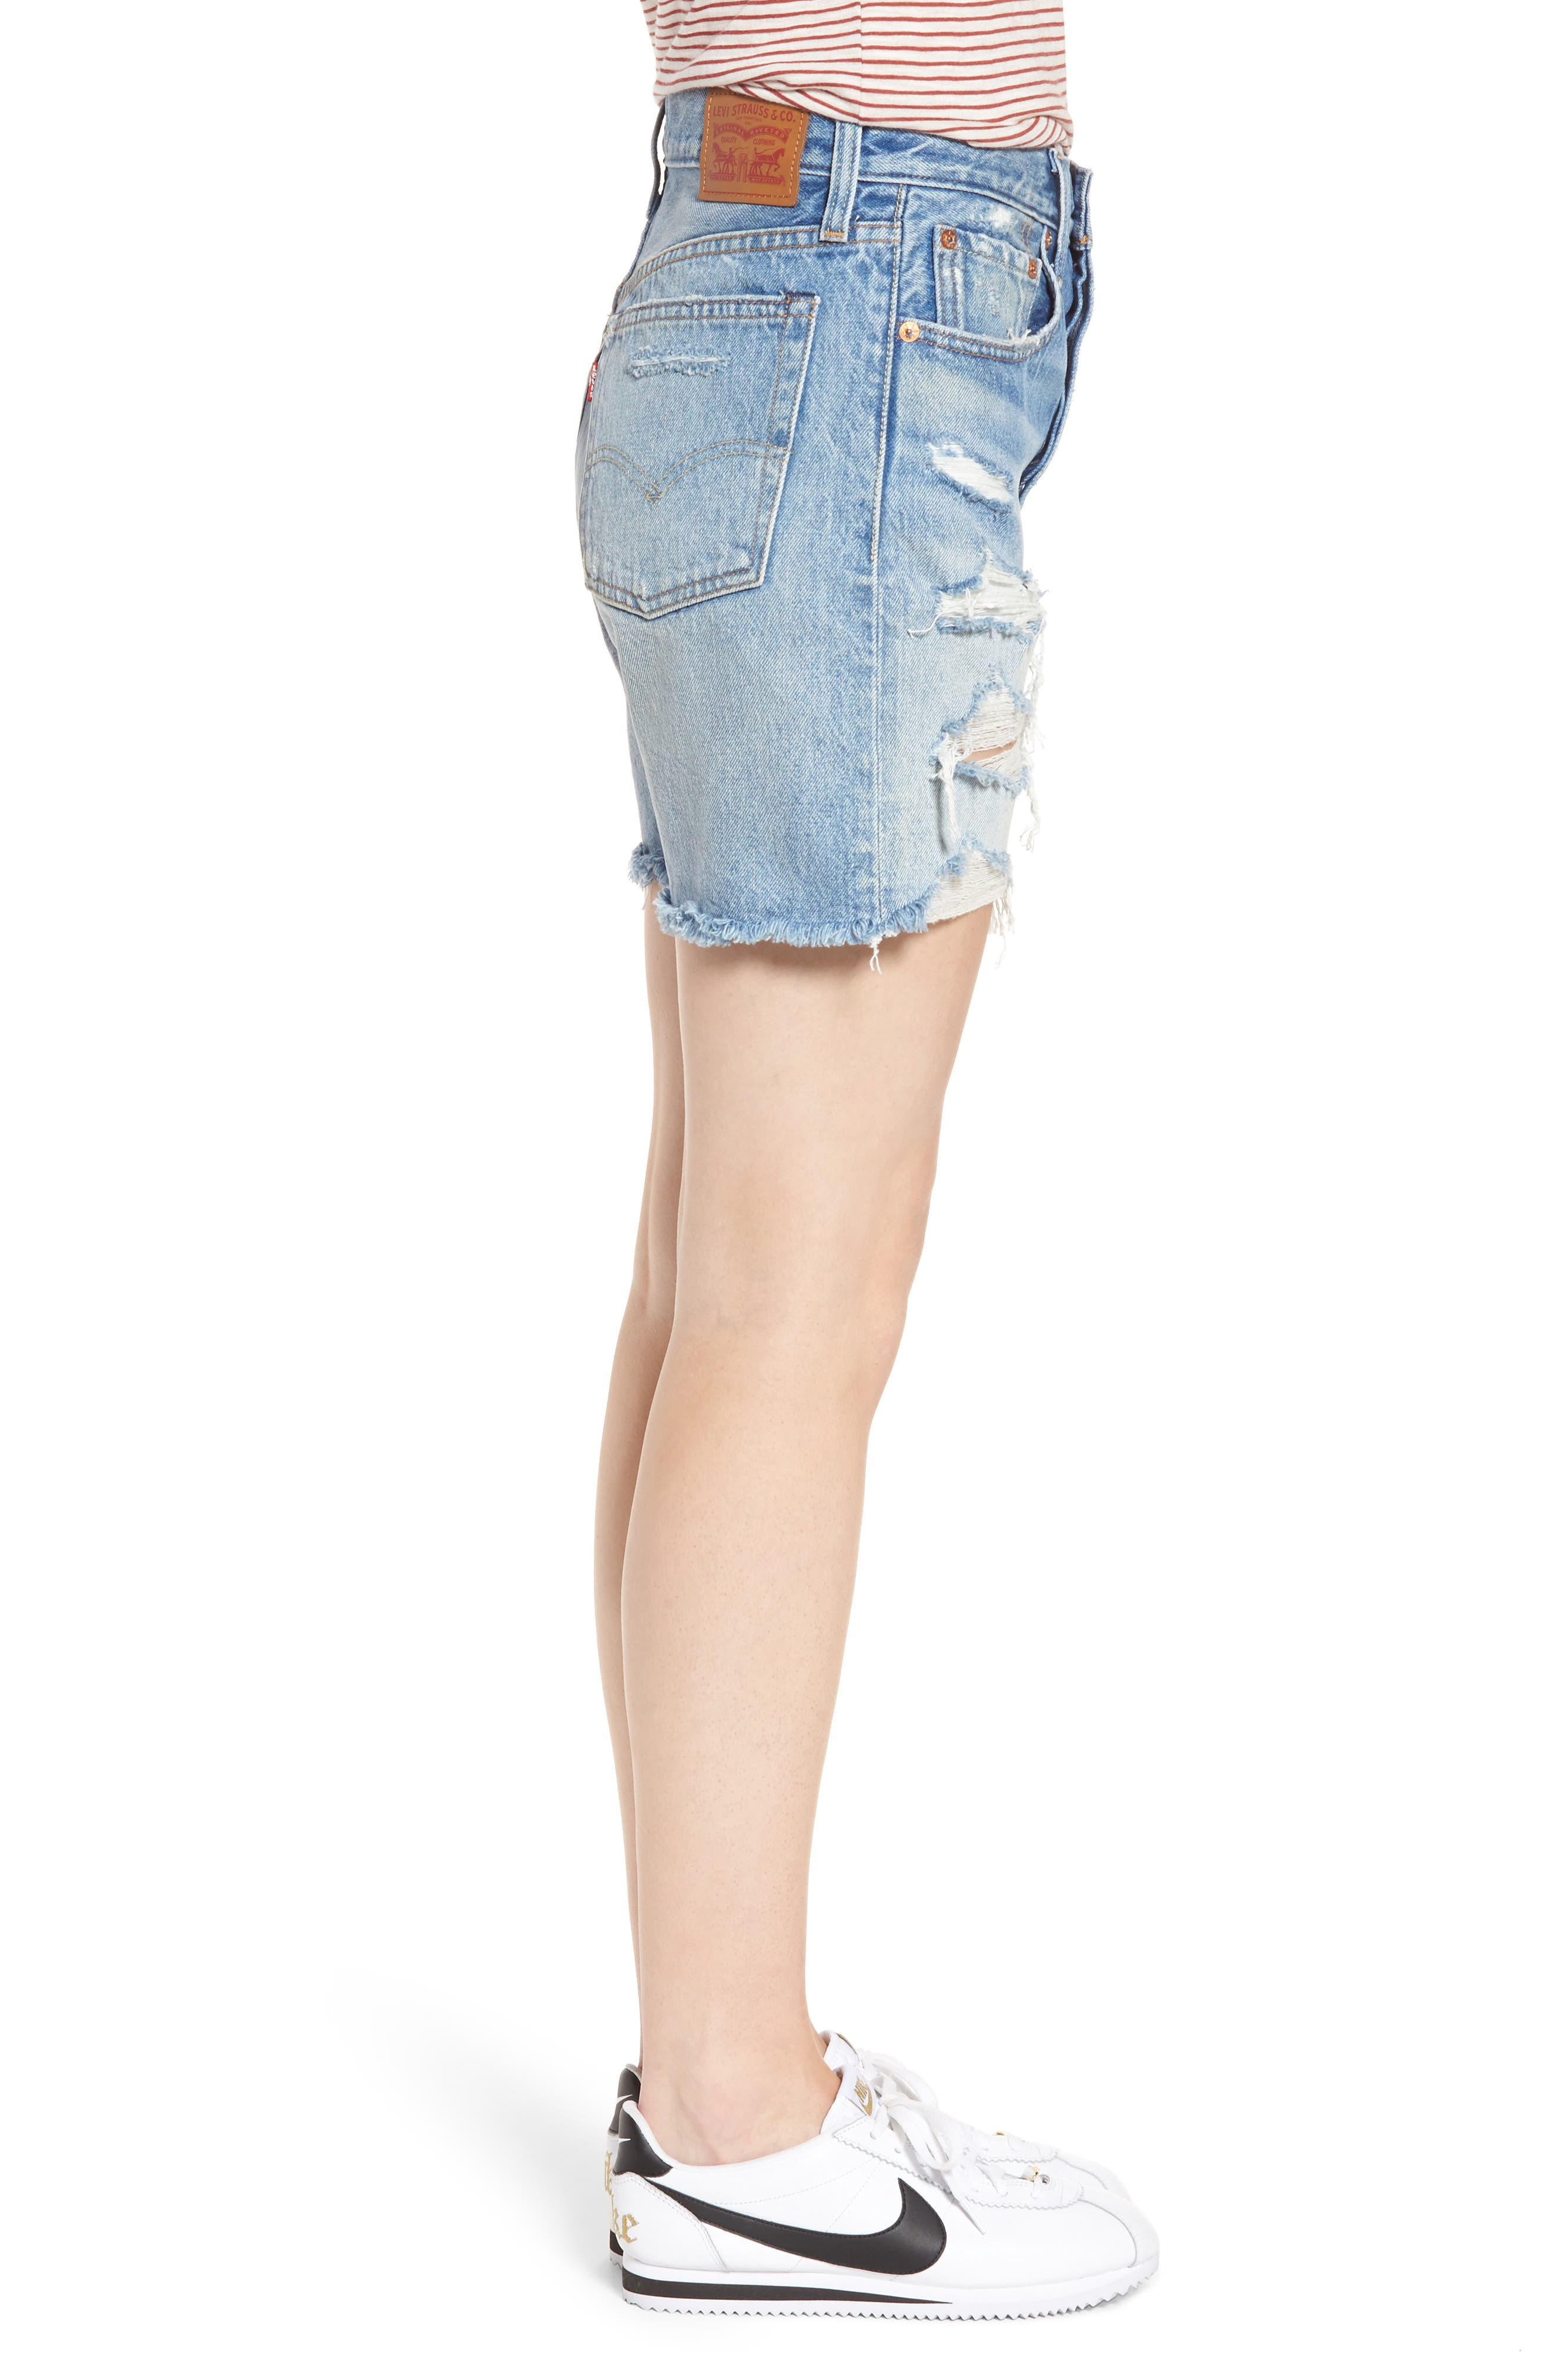 Indie Shredded Cutoff Denim Shorts,                             Alternate thumbnail 3, color,                             Let It Rip